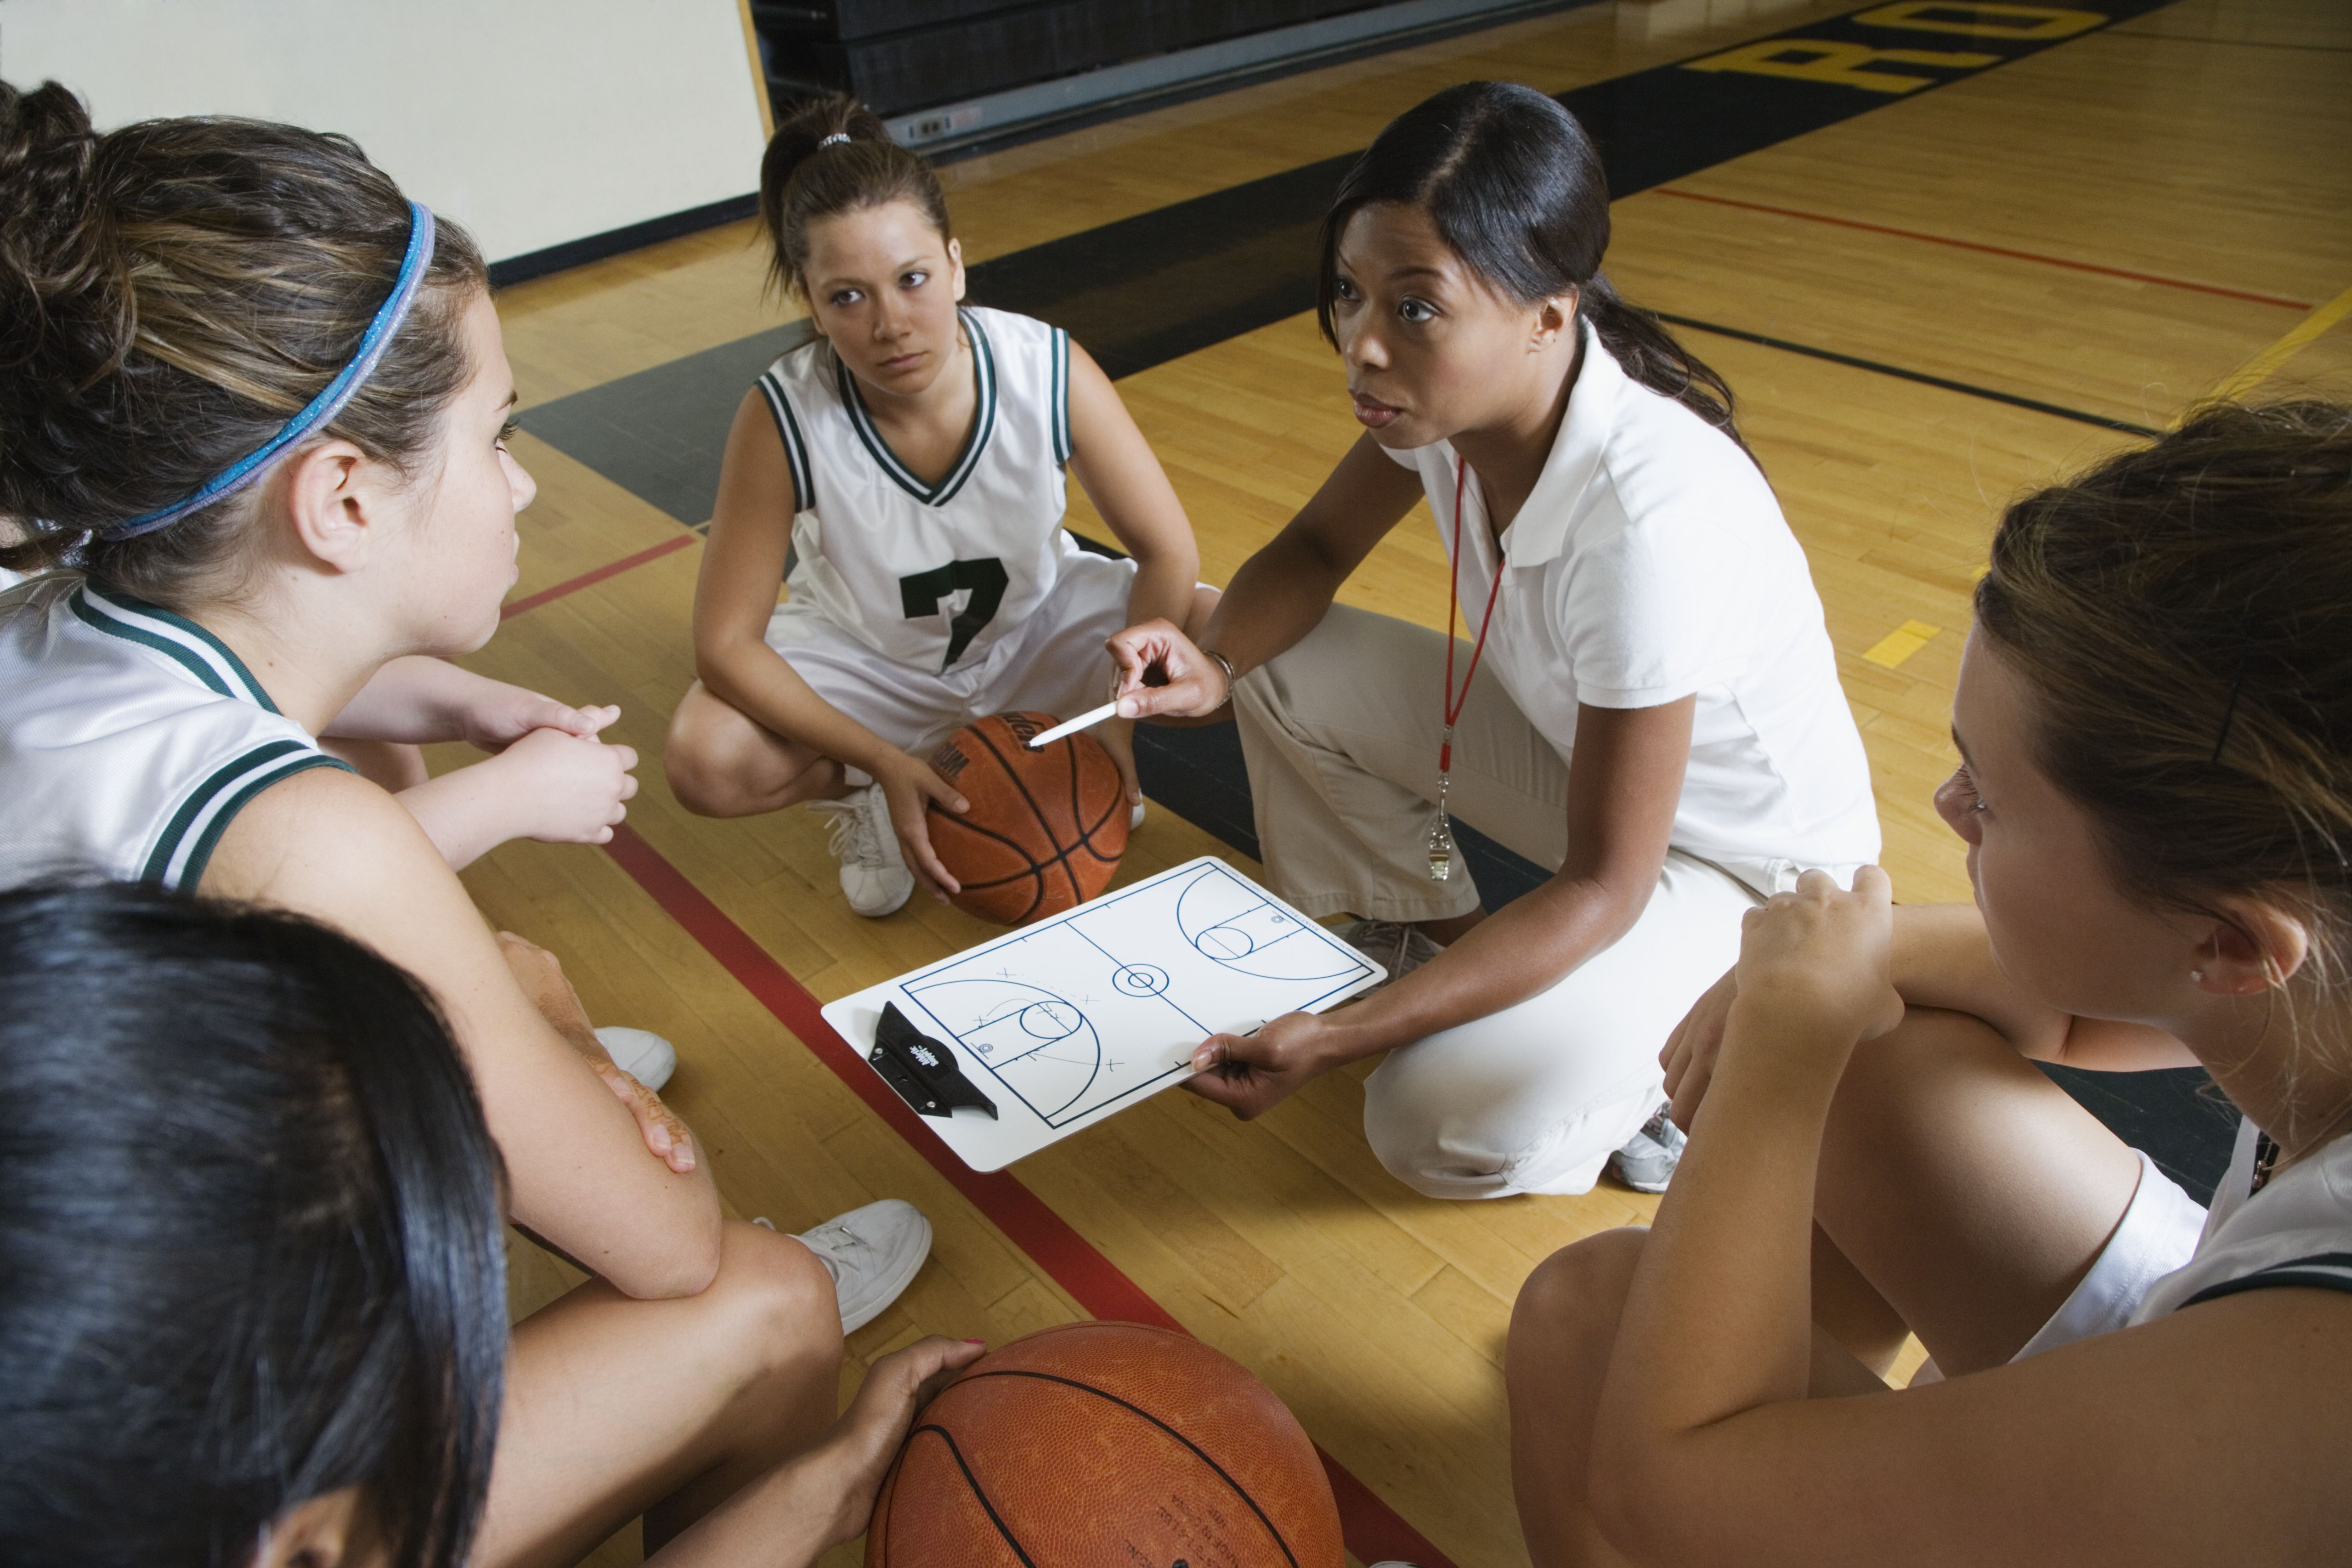 Basketball coach talking with students in a gym